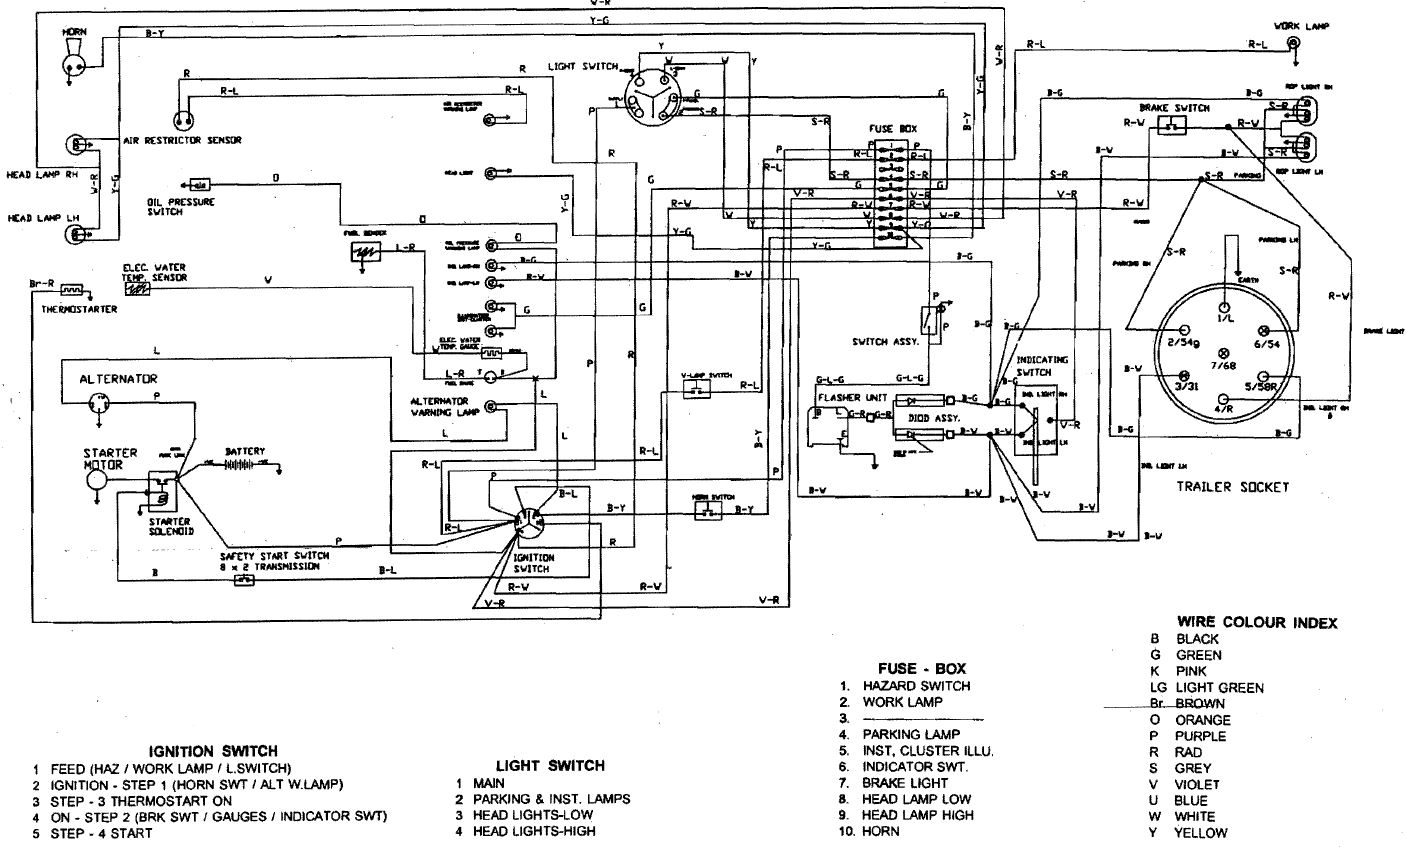 20158463319_b82d524c3d_o ignition switch wiring diagram ignition switch wiring diagram at eliteediting.co